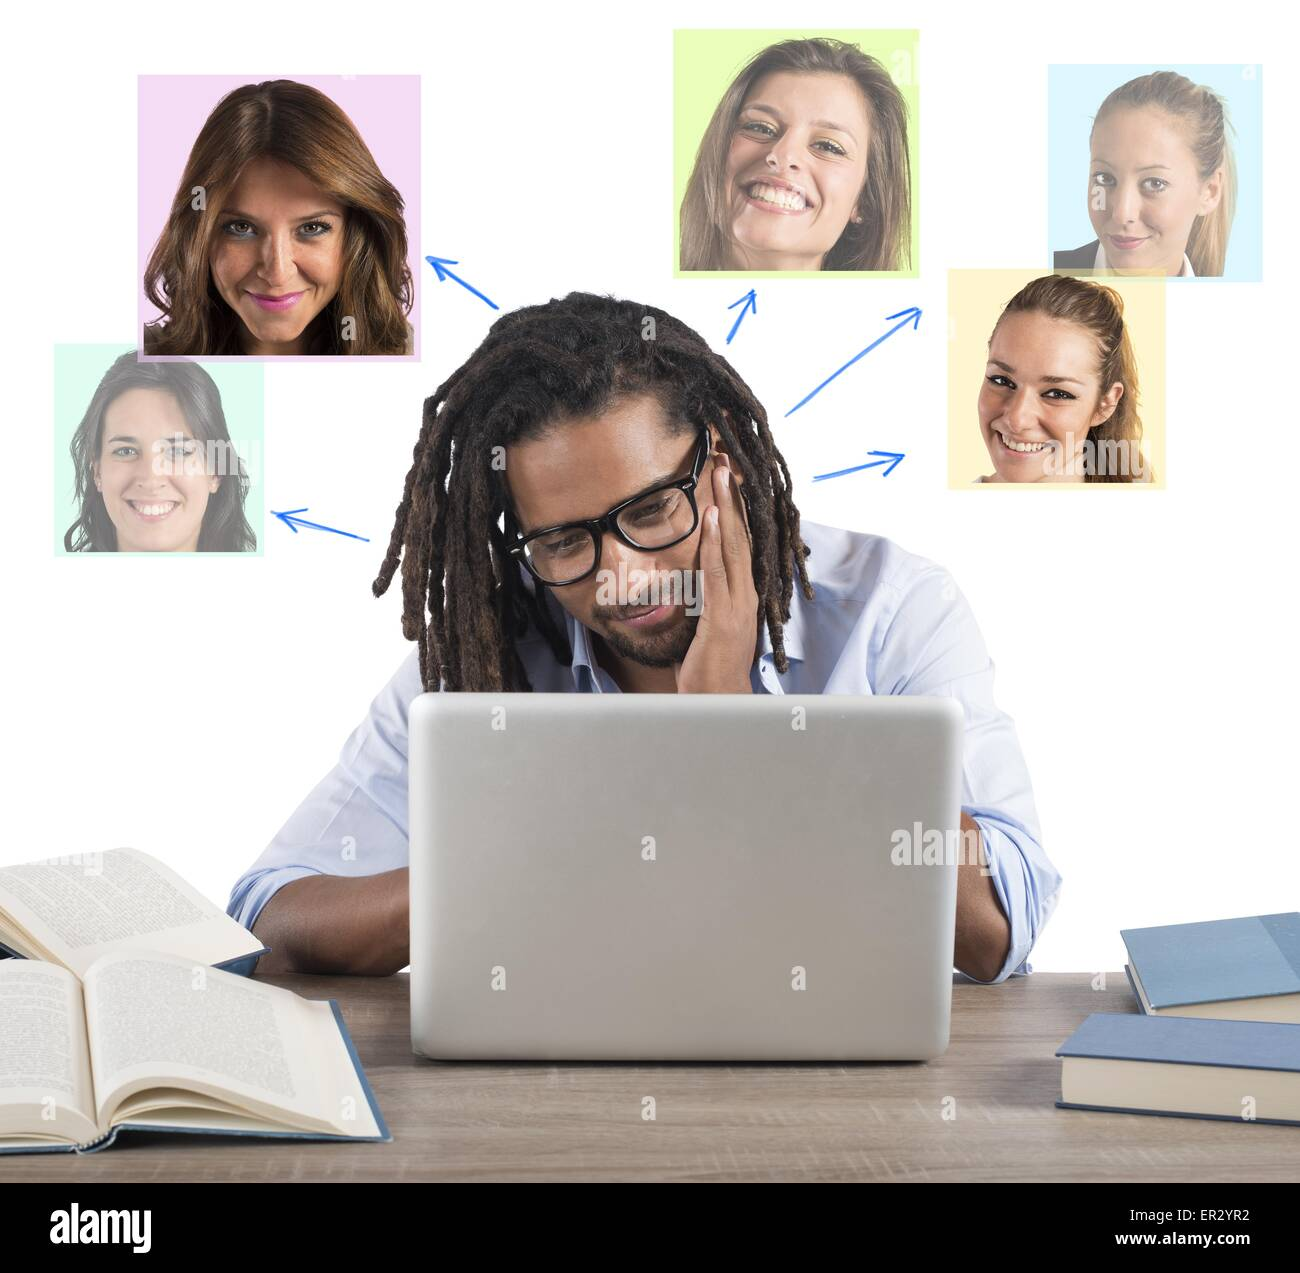 Man chat with girls Stock Photo